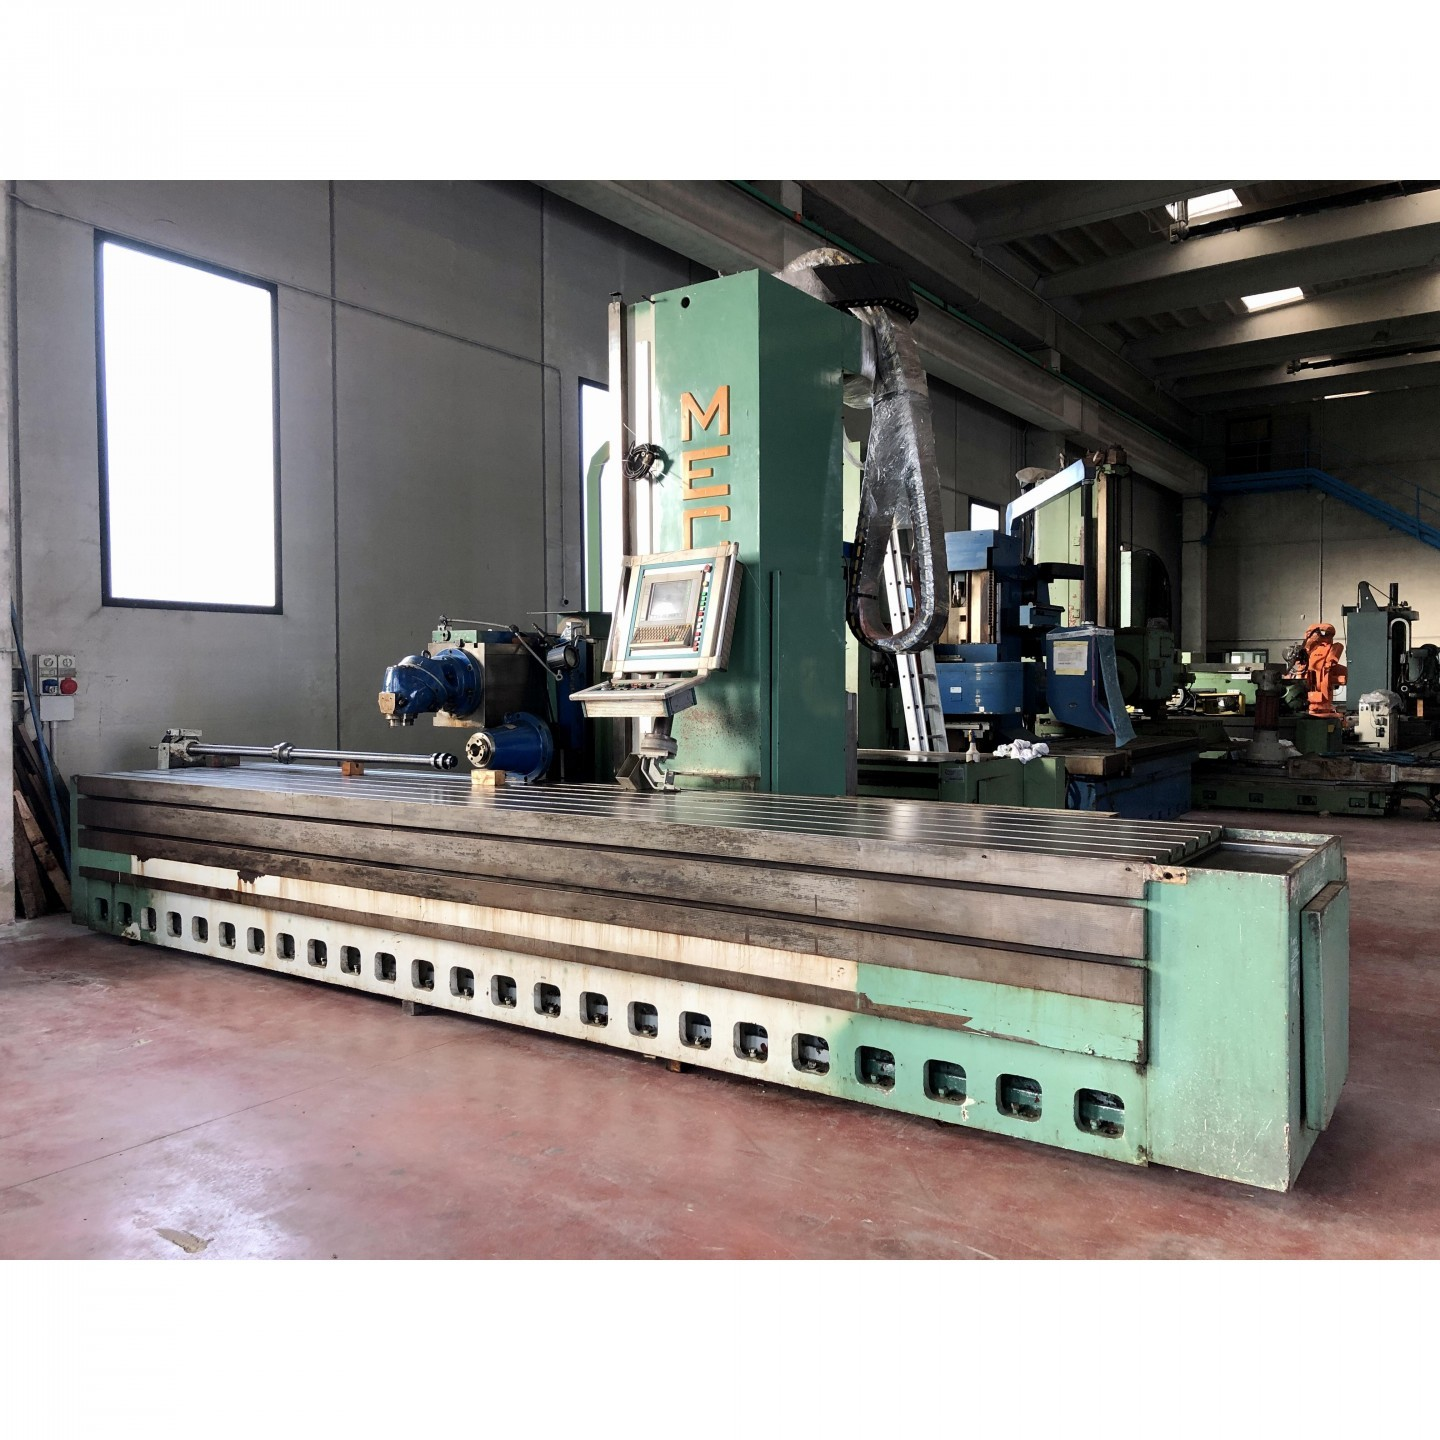 MECOF CS 105 G - CNC SELCA AUTOMATIC HEAD - FLOOR TYPE MILLING MACHINE